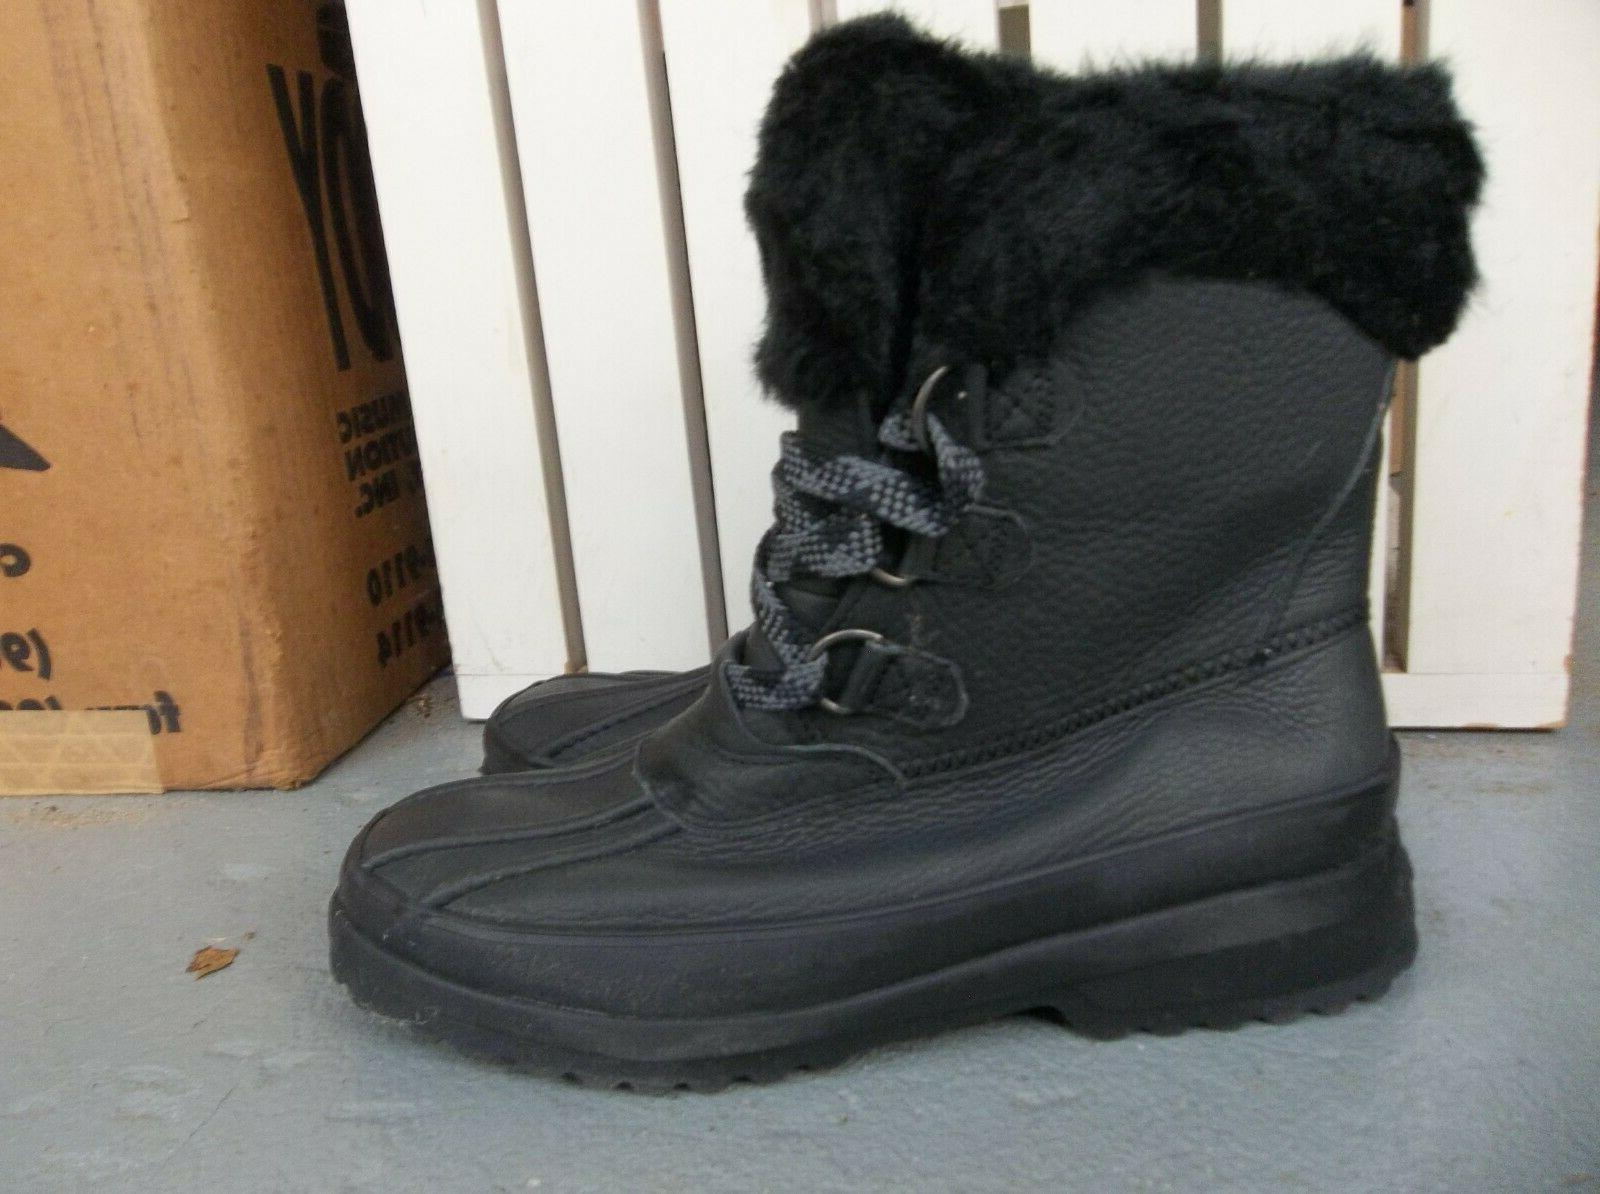 NEW WOMEN'S SPERRY TOP SIDER MARITIME WINTER LEATHER BOOTS.BLACK.SIZE 7.2019